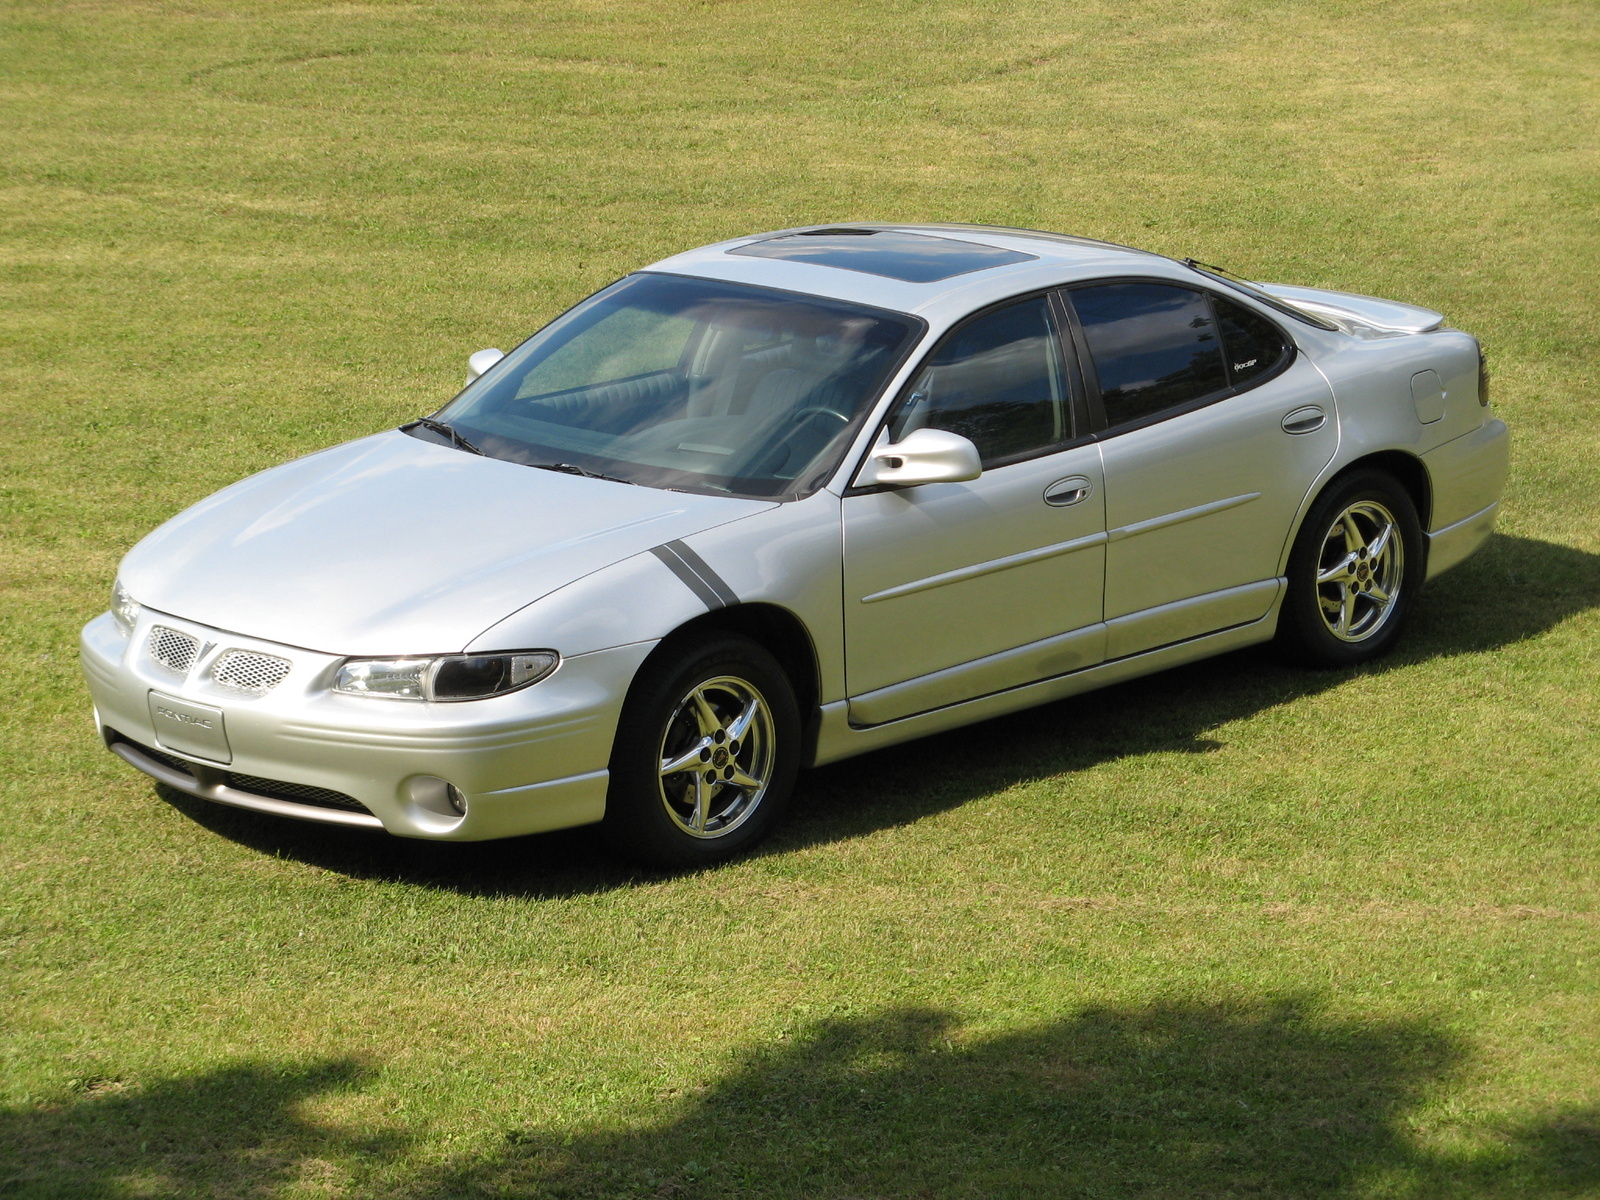 2002 Pontiac Grand Prix GT picture